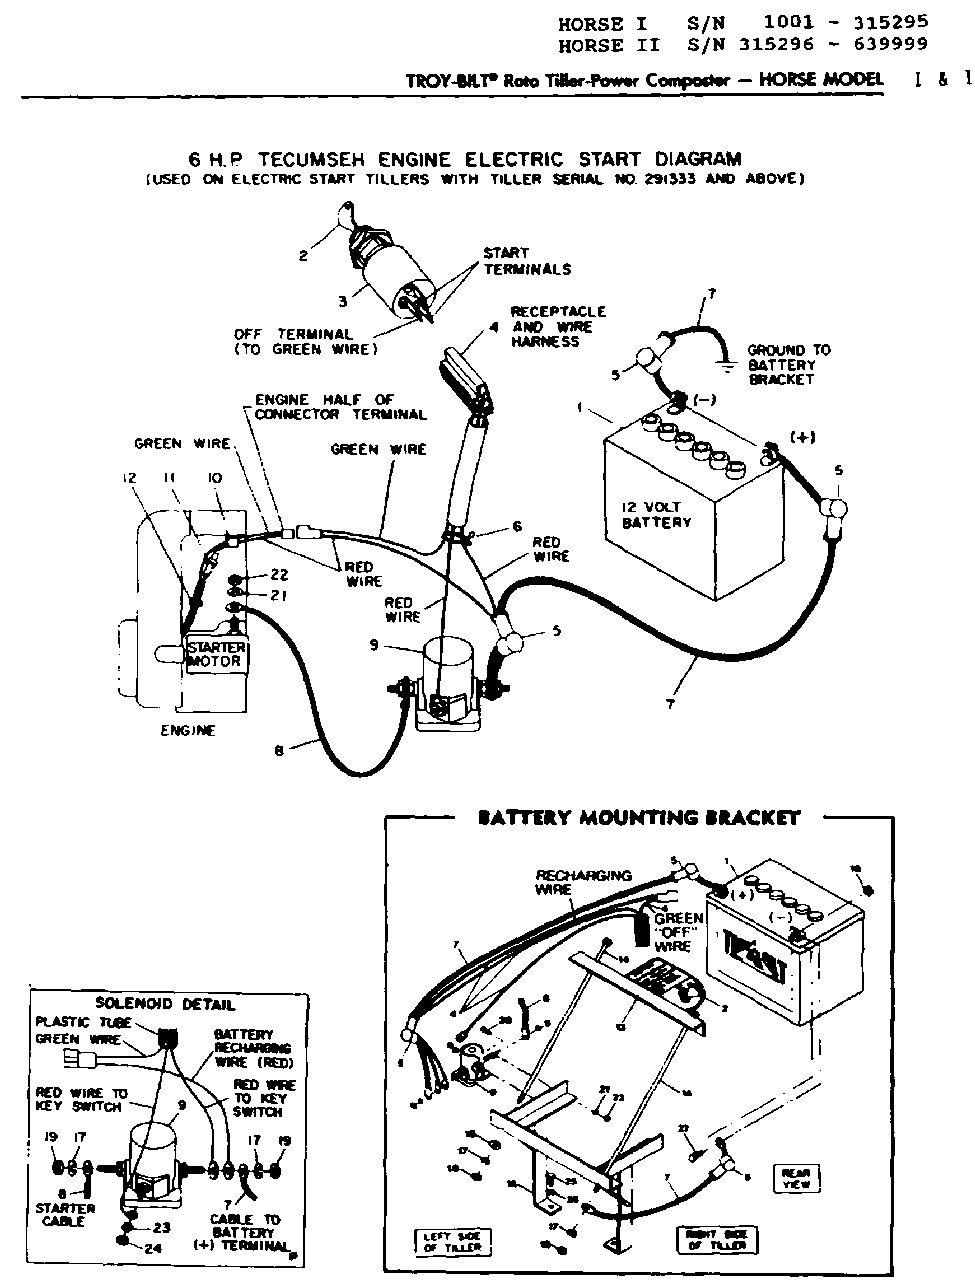 Goodman Electric Furnace Wiring Diagram additionally How To Read Plans as well 7ryee Need Simple Read Wireing Diagram 1976 Harley Davidson together with Viewtopic besides Thermometer. on wiring diagram for dummies